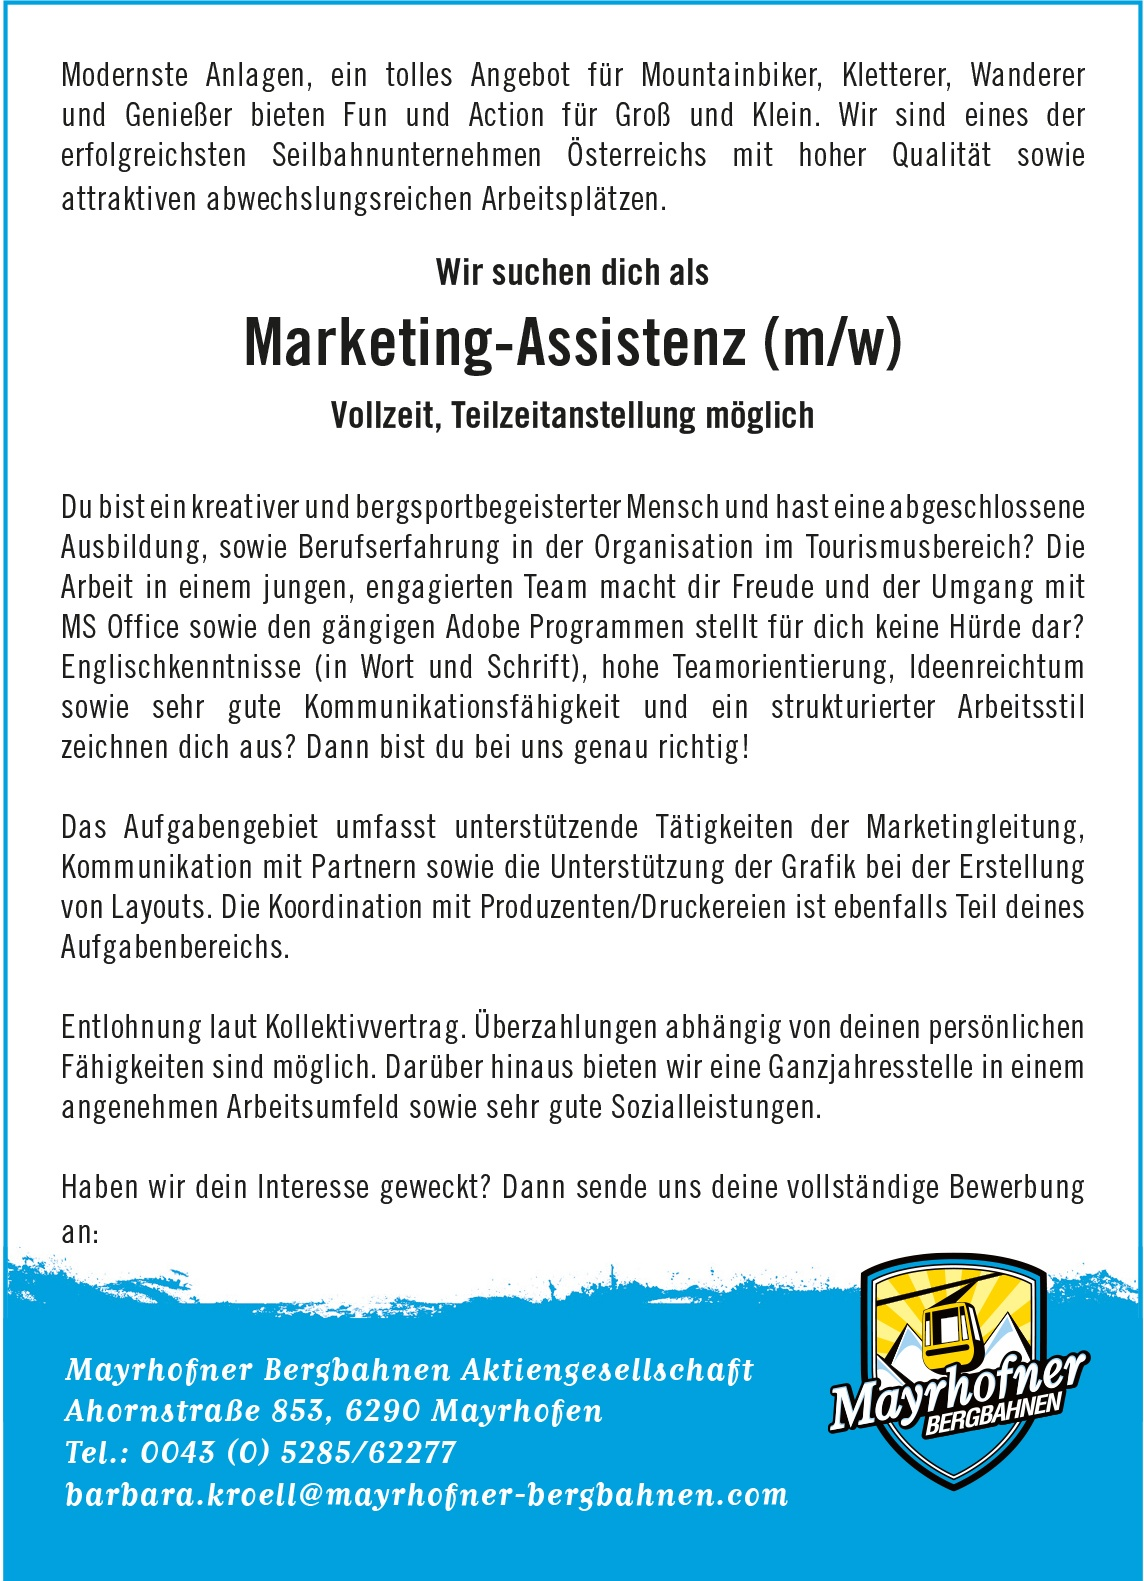 MARKETING-ASSISTENZ